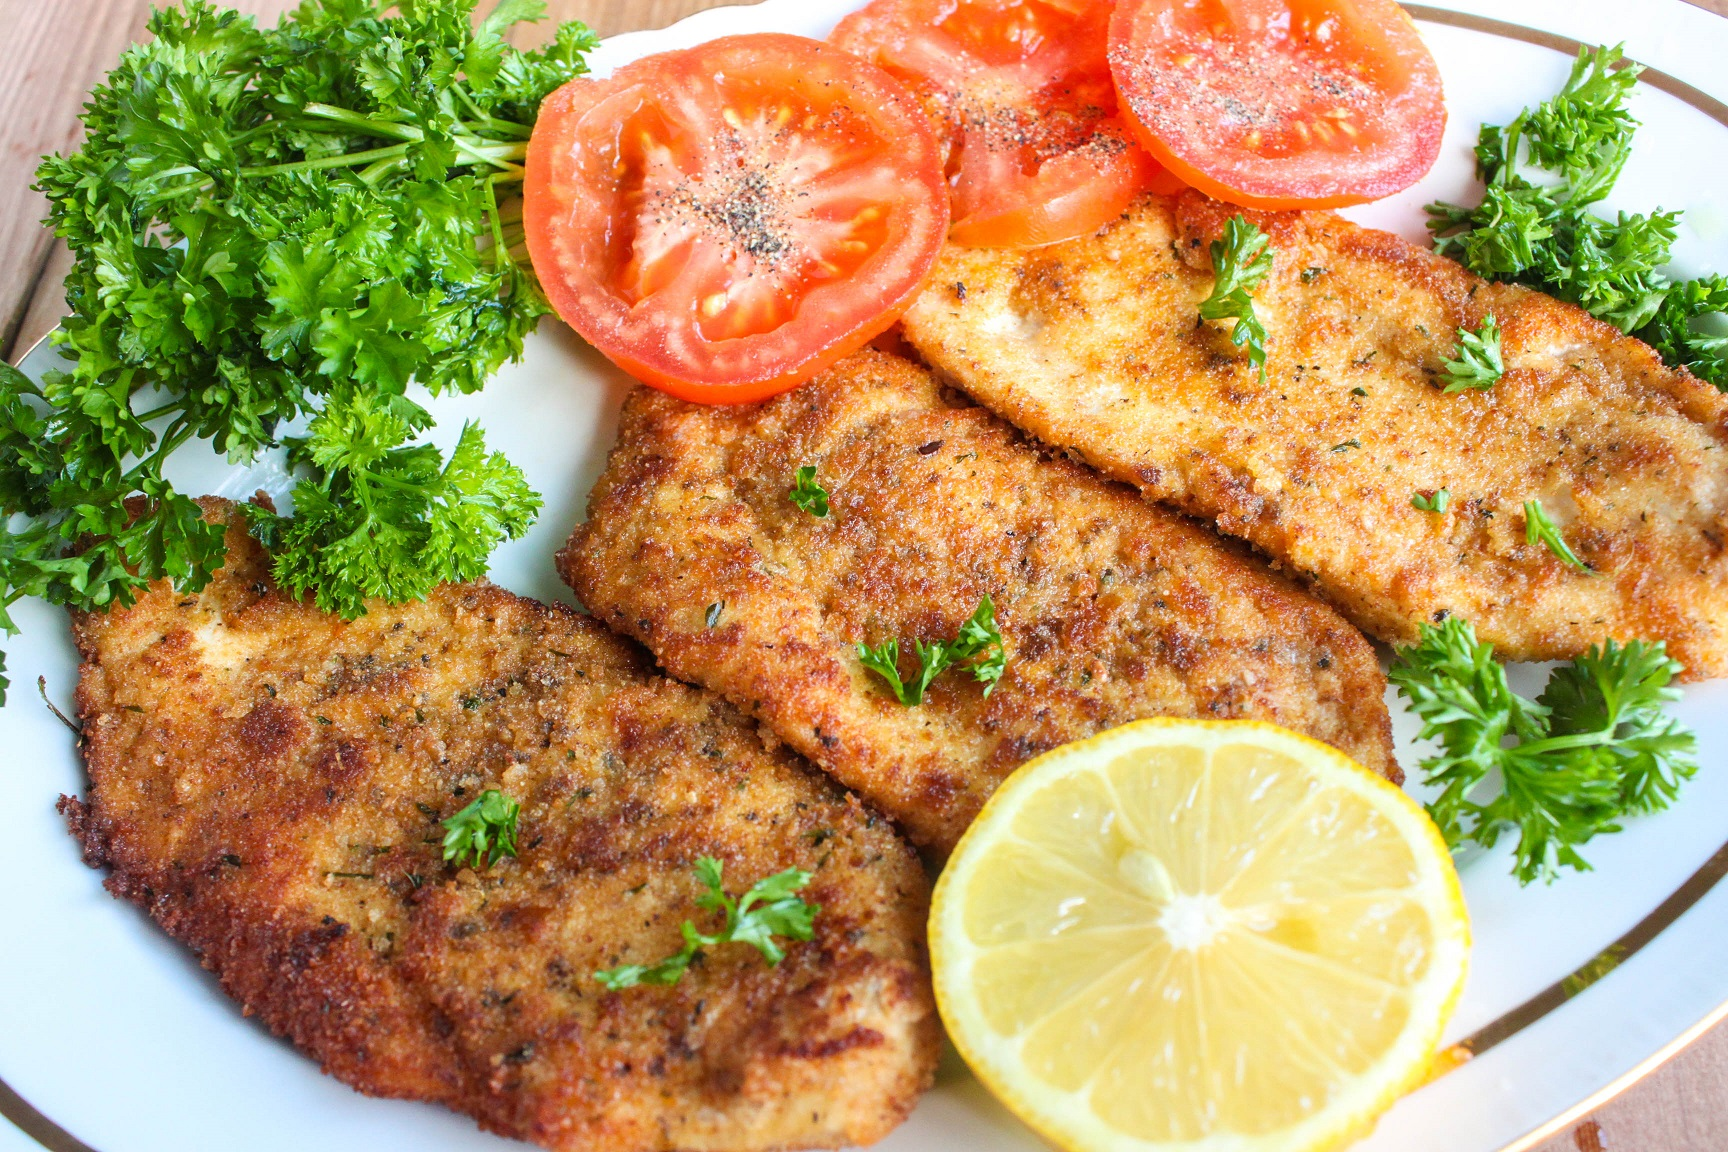 Juicy and flavorful Chicken Chops - easy to make family favorite!